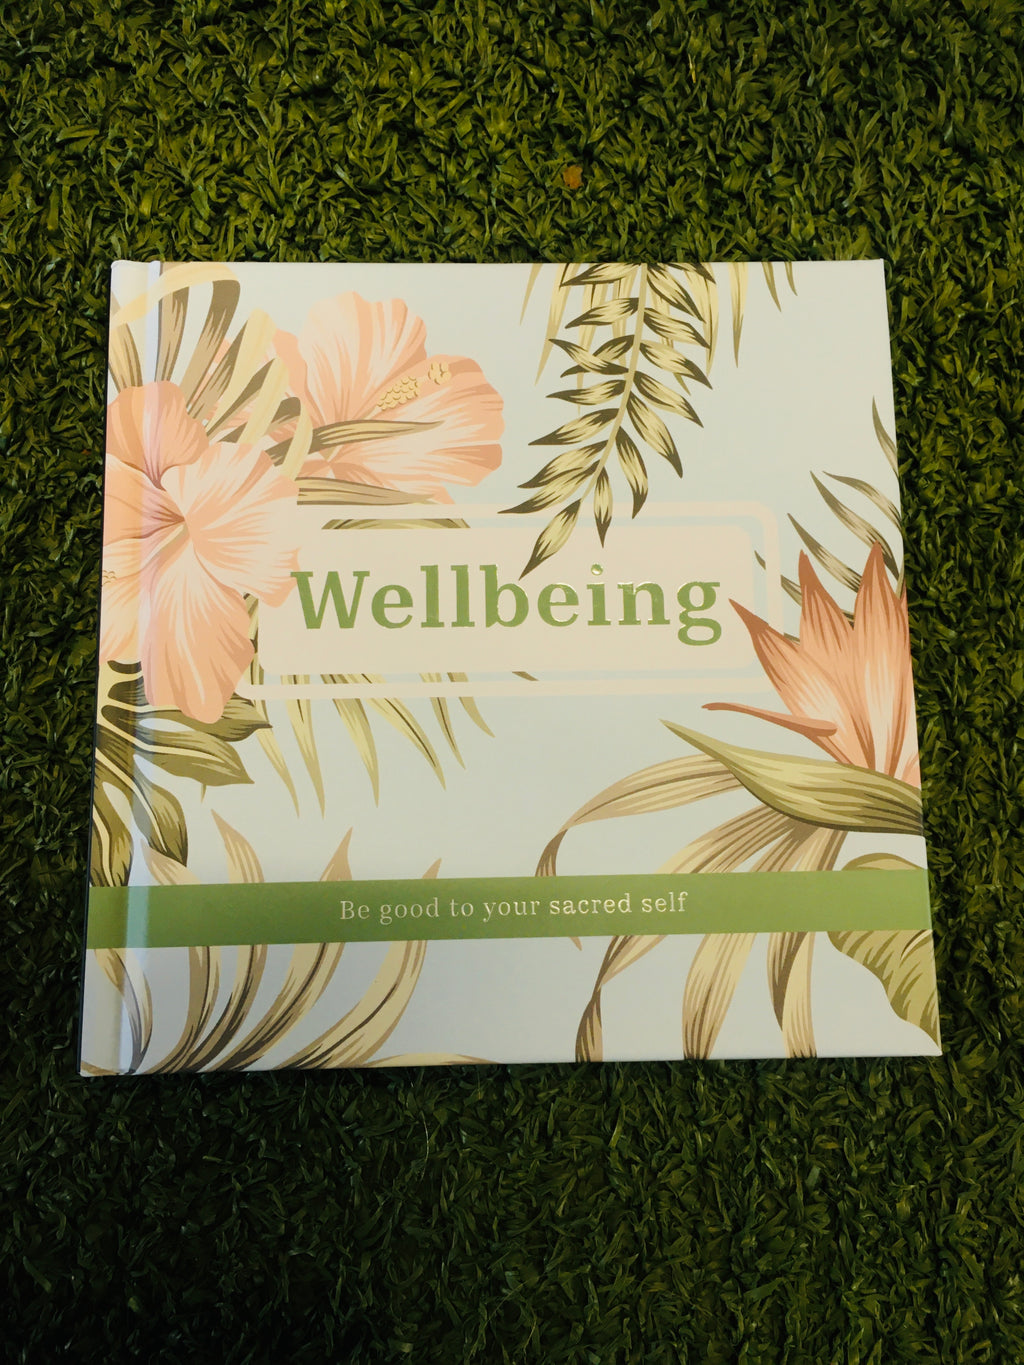 Book, Wellbeing, Be Good to your Sacred Self